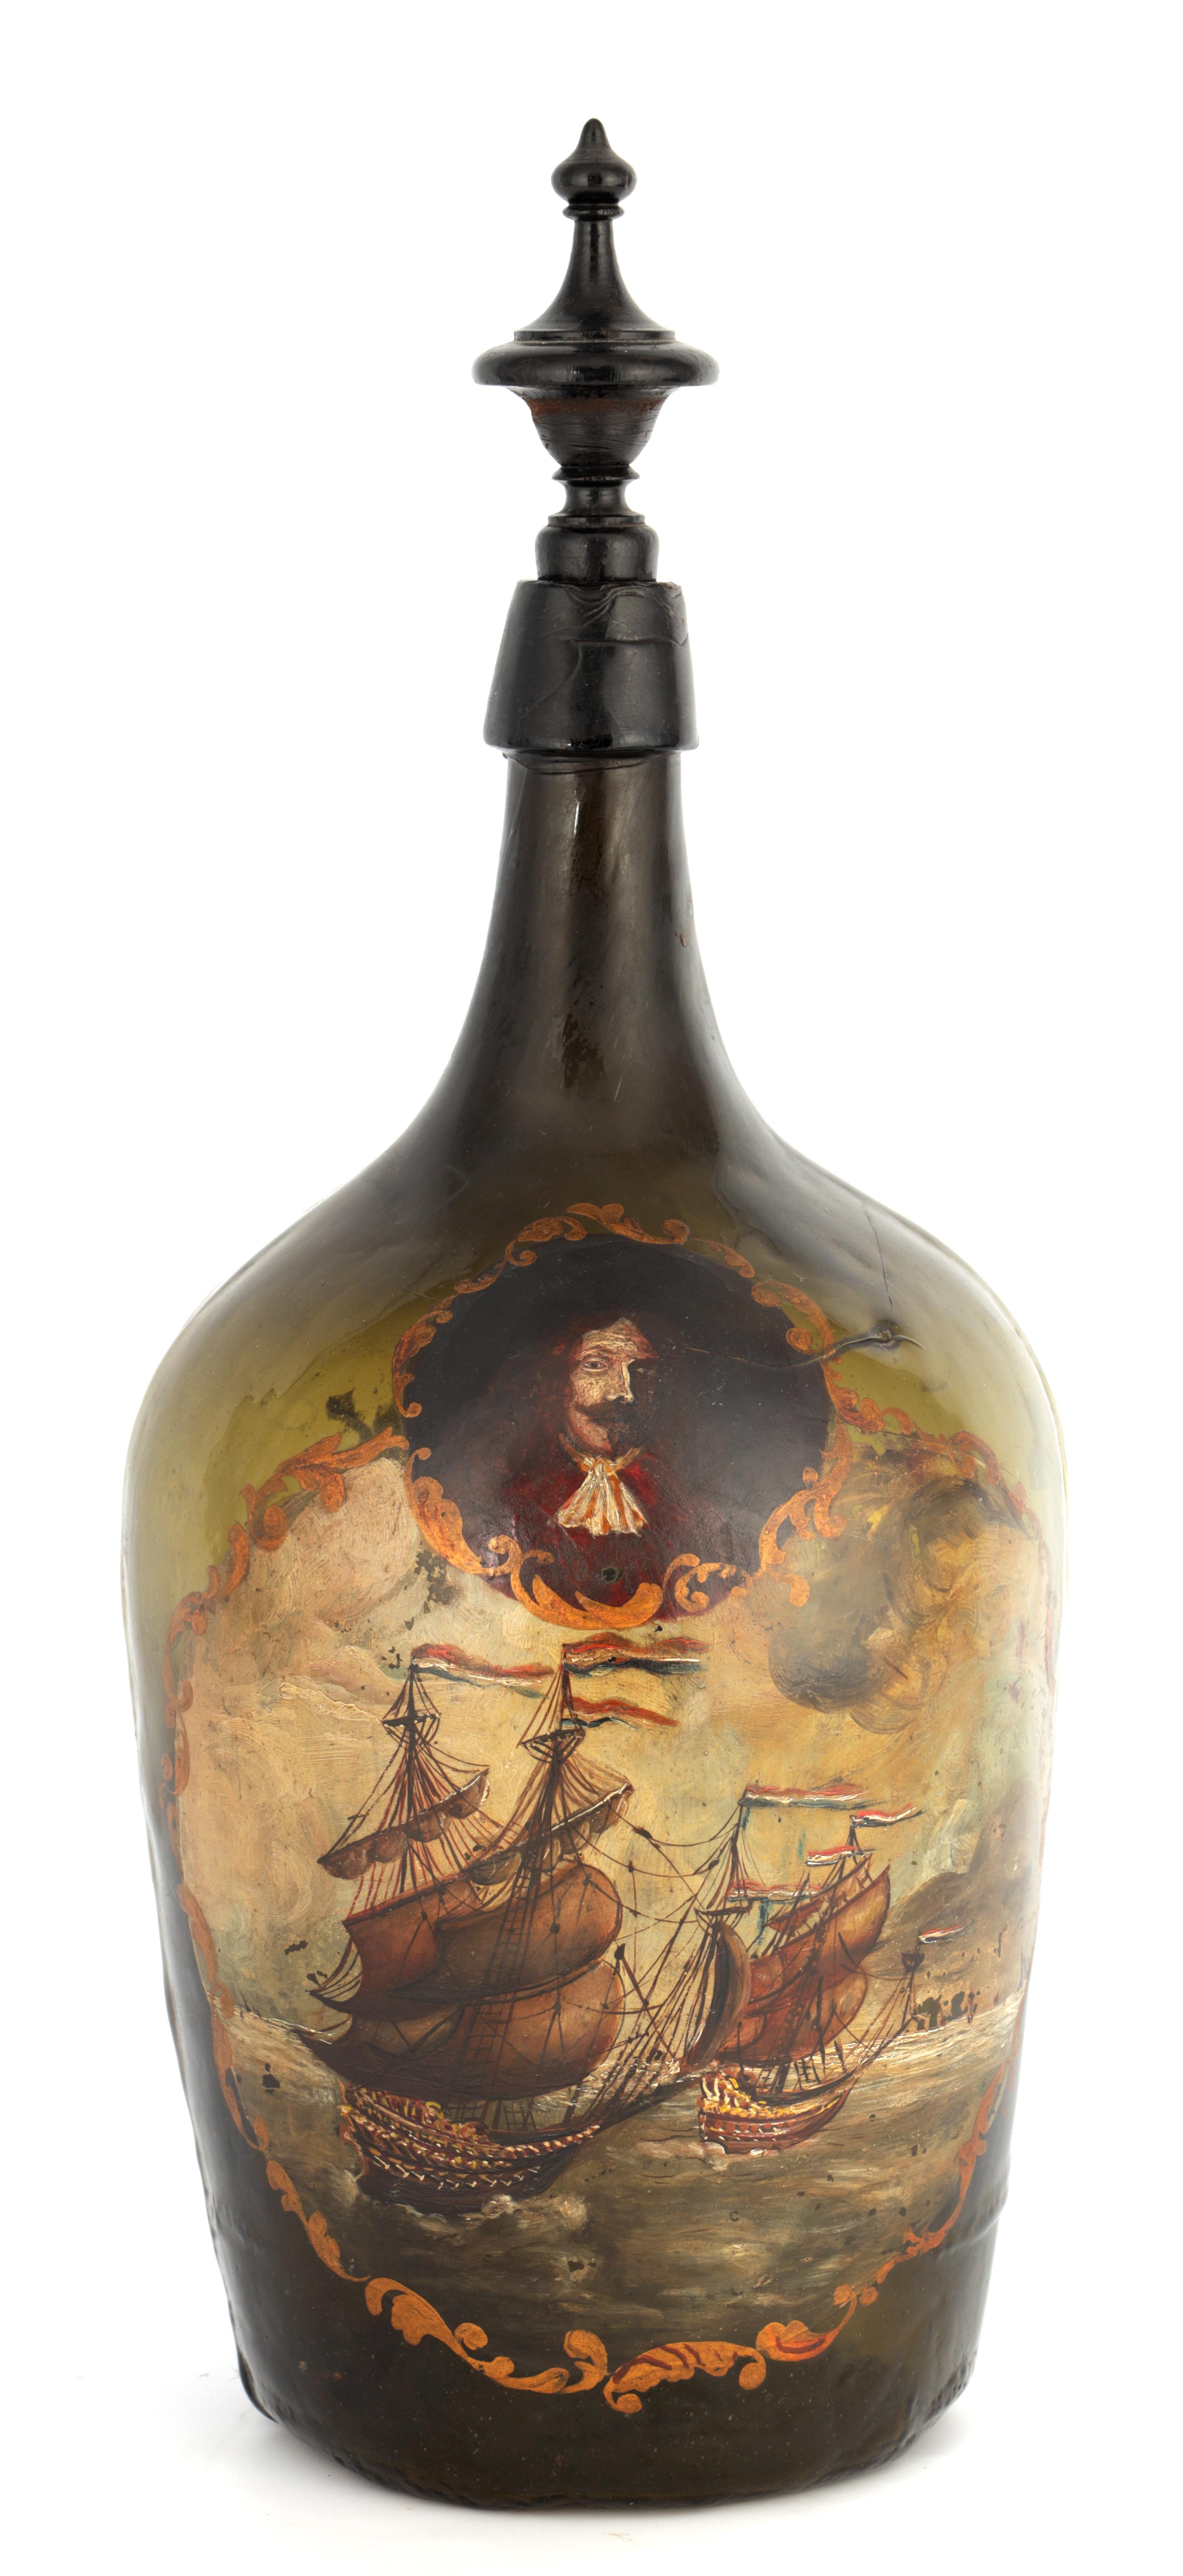 AN 18TH CENTURY GREEN GLASS BOTTLE WITH PAINTED NAVAL SCENE AND ARMOURIAL depicting a naval scene